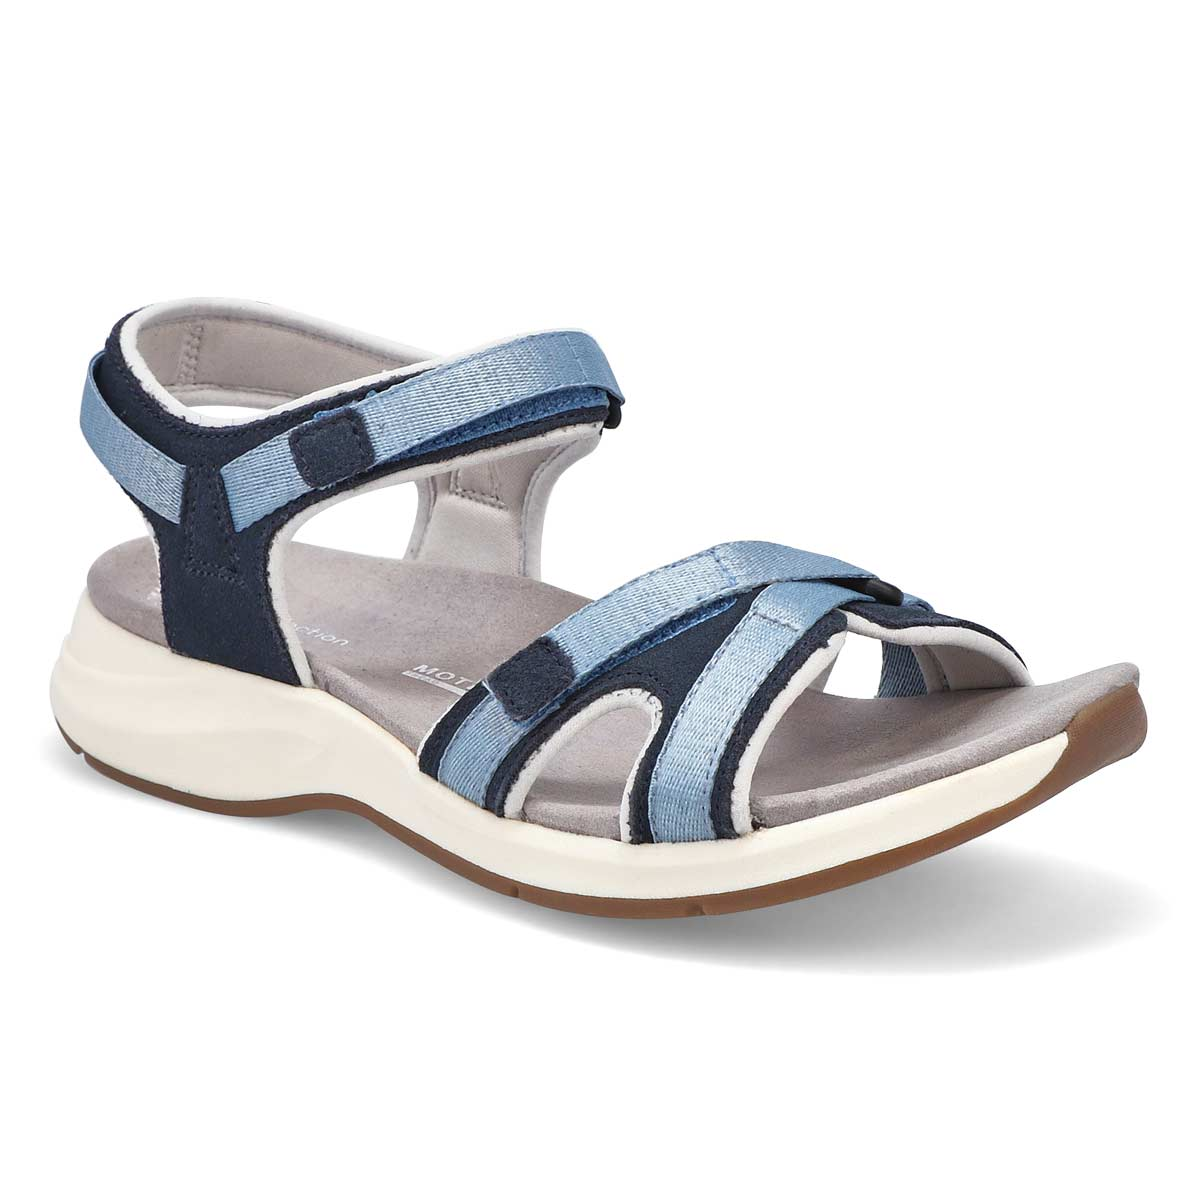 Women's Solan Drift Sandal - Navy Blue